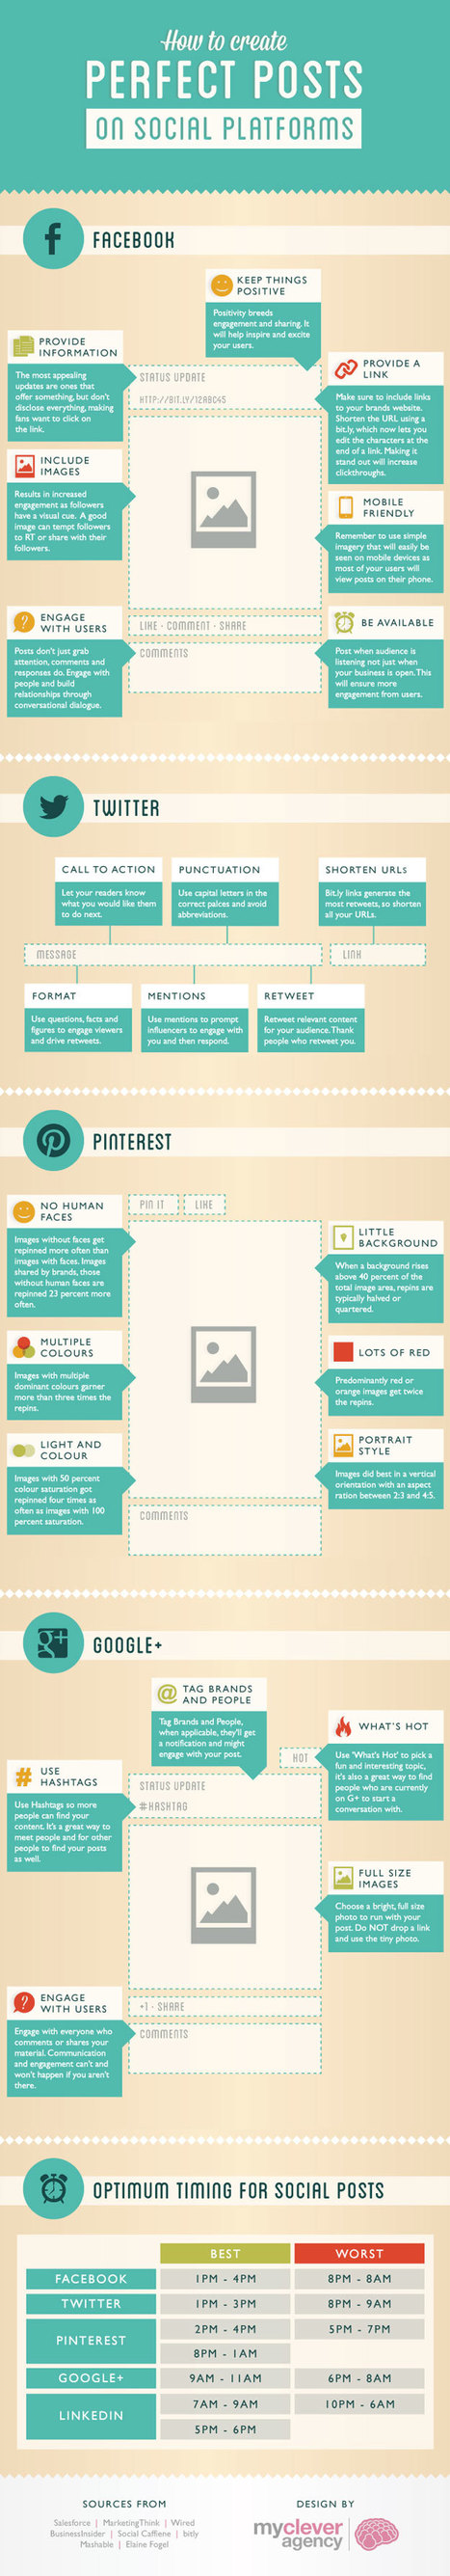 How To Create Effective Posts on the 4 Main Social Sites [Infographic] | Rwh_at | Scoop.it